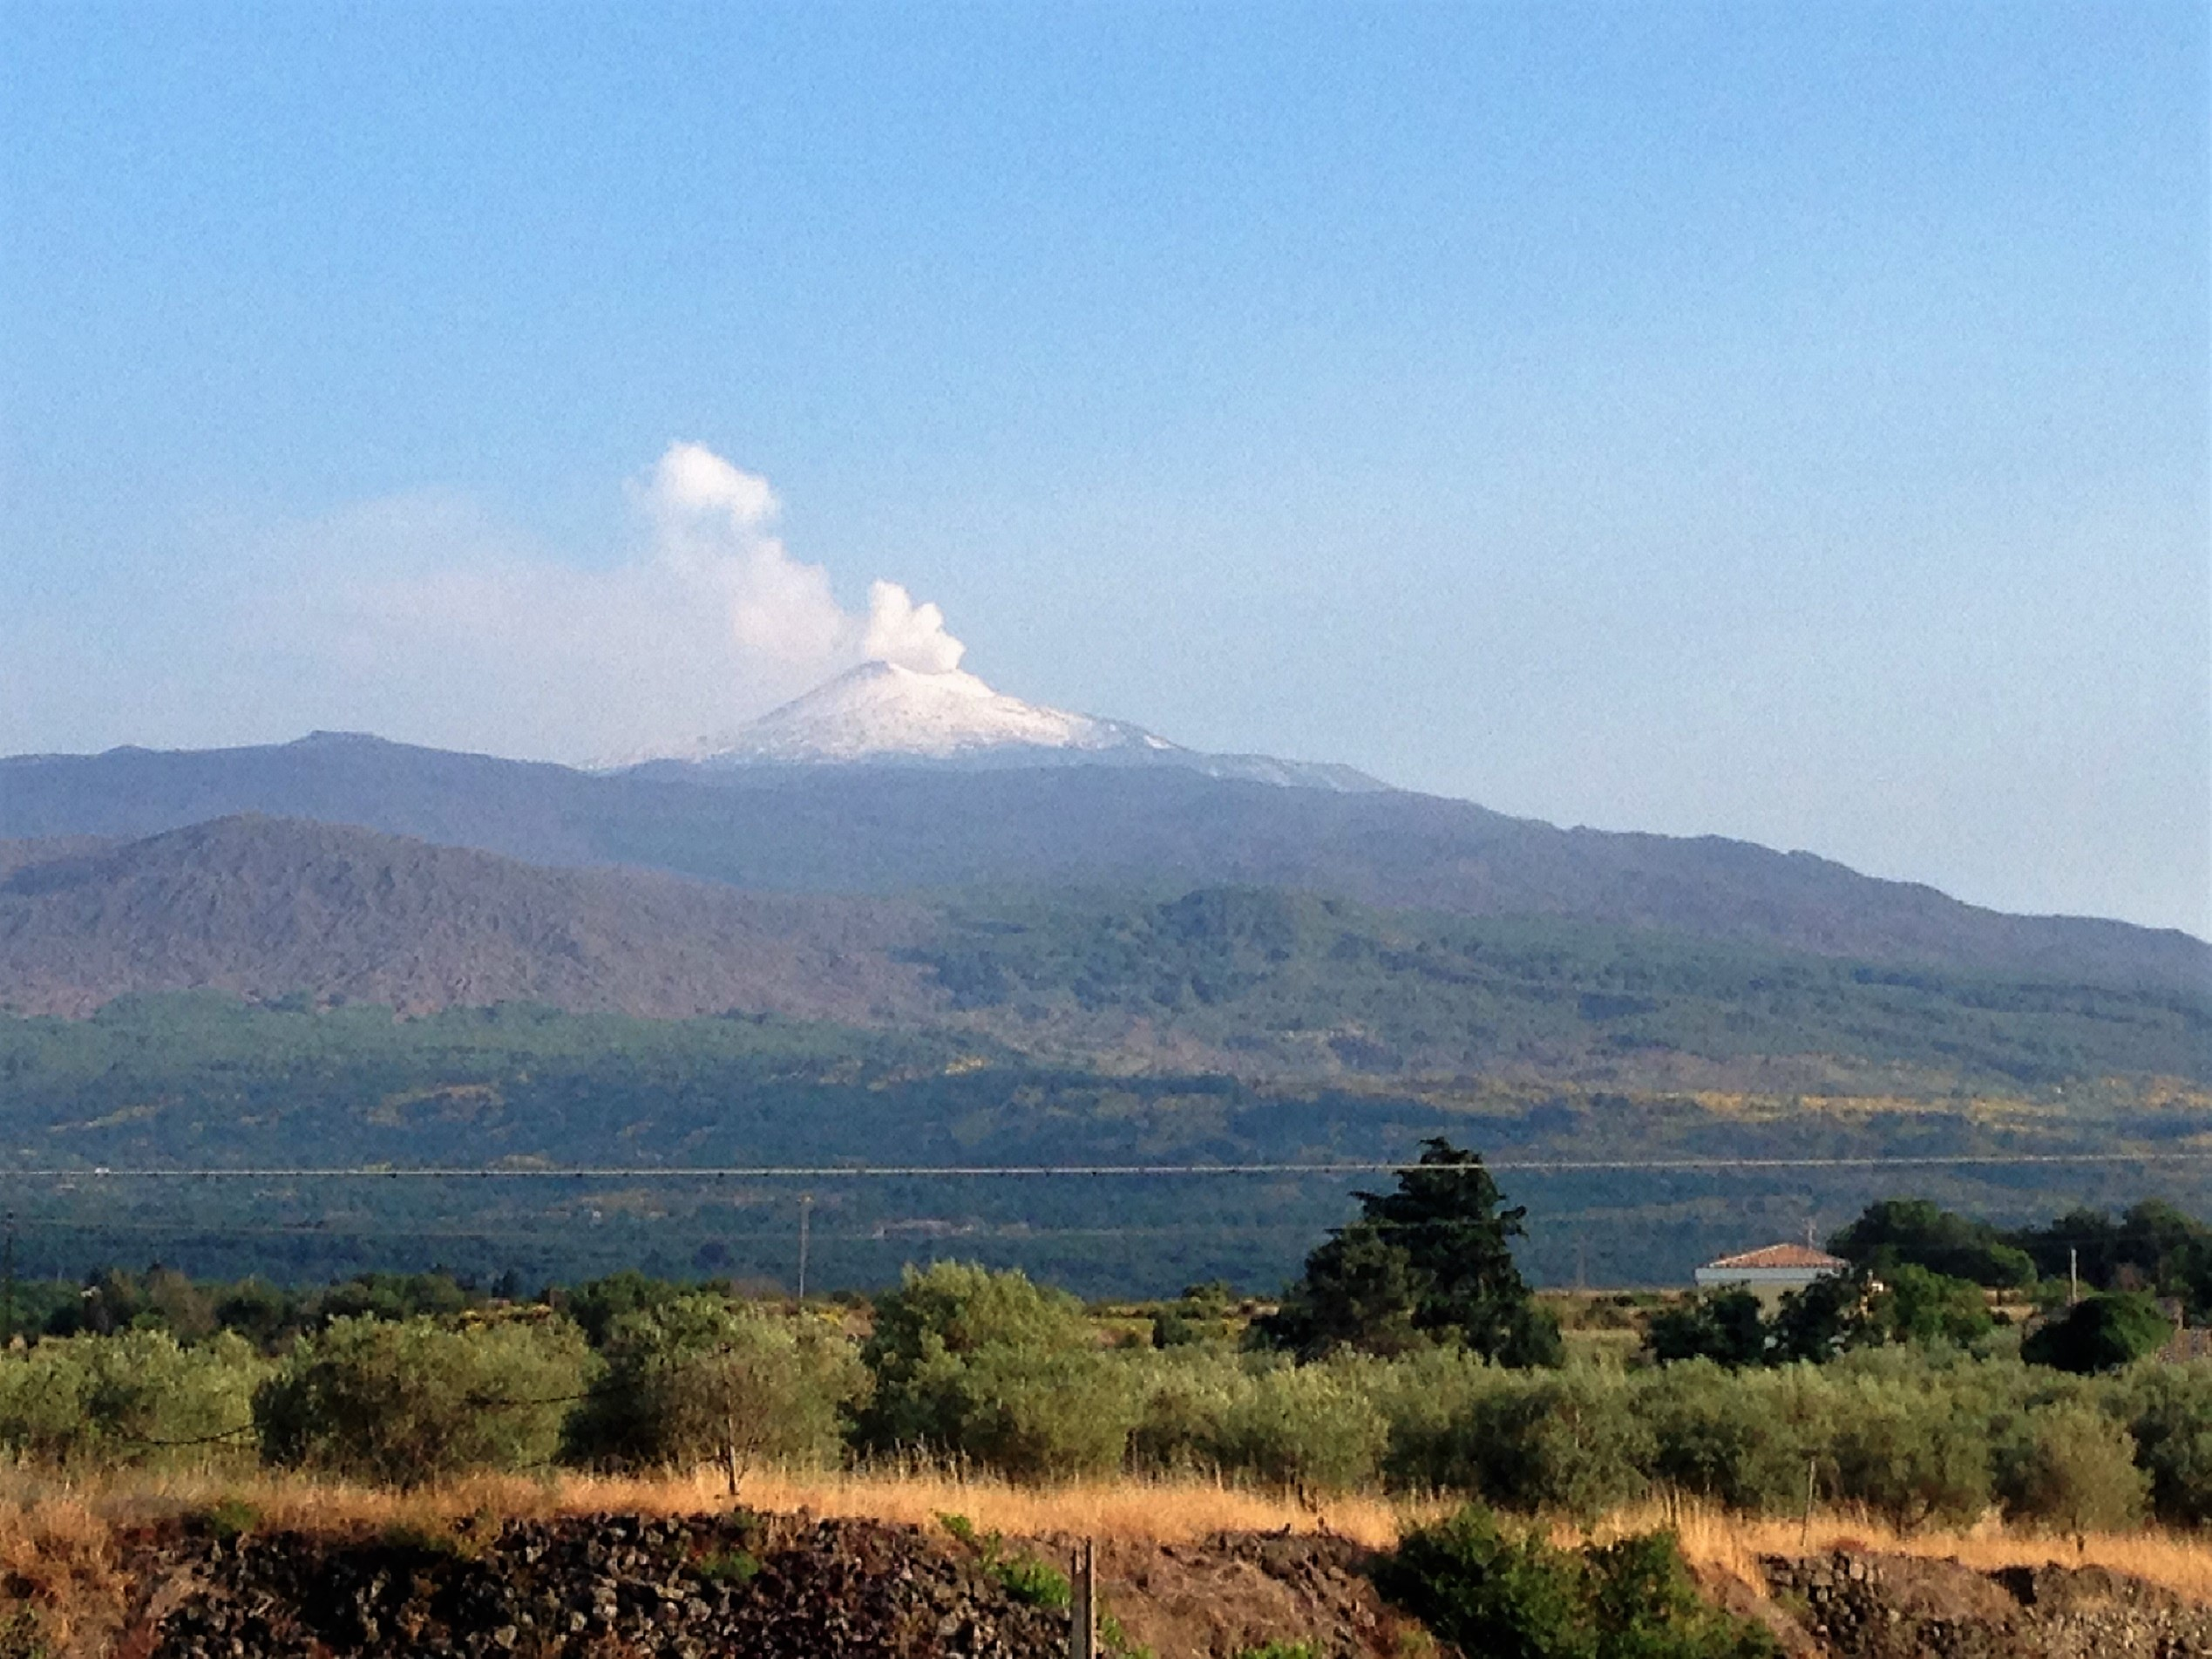 The other side of Mount Etna